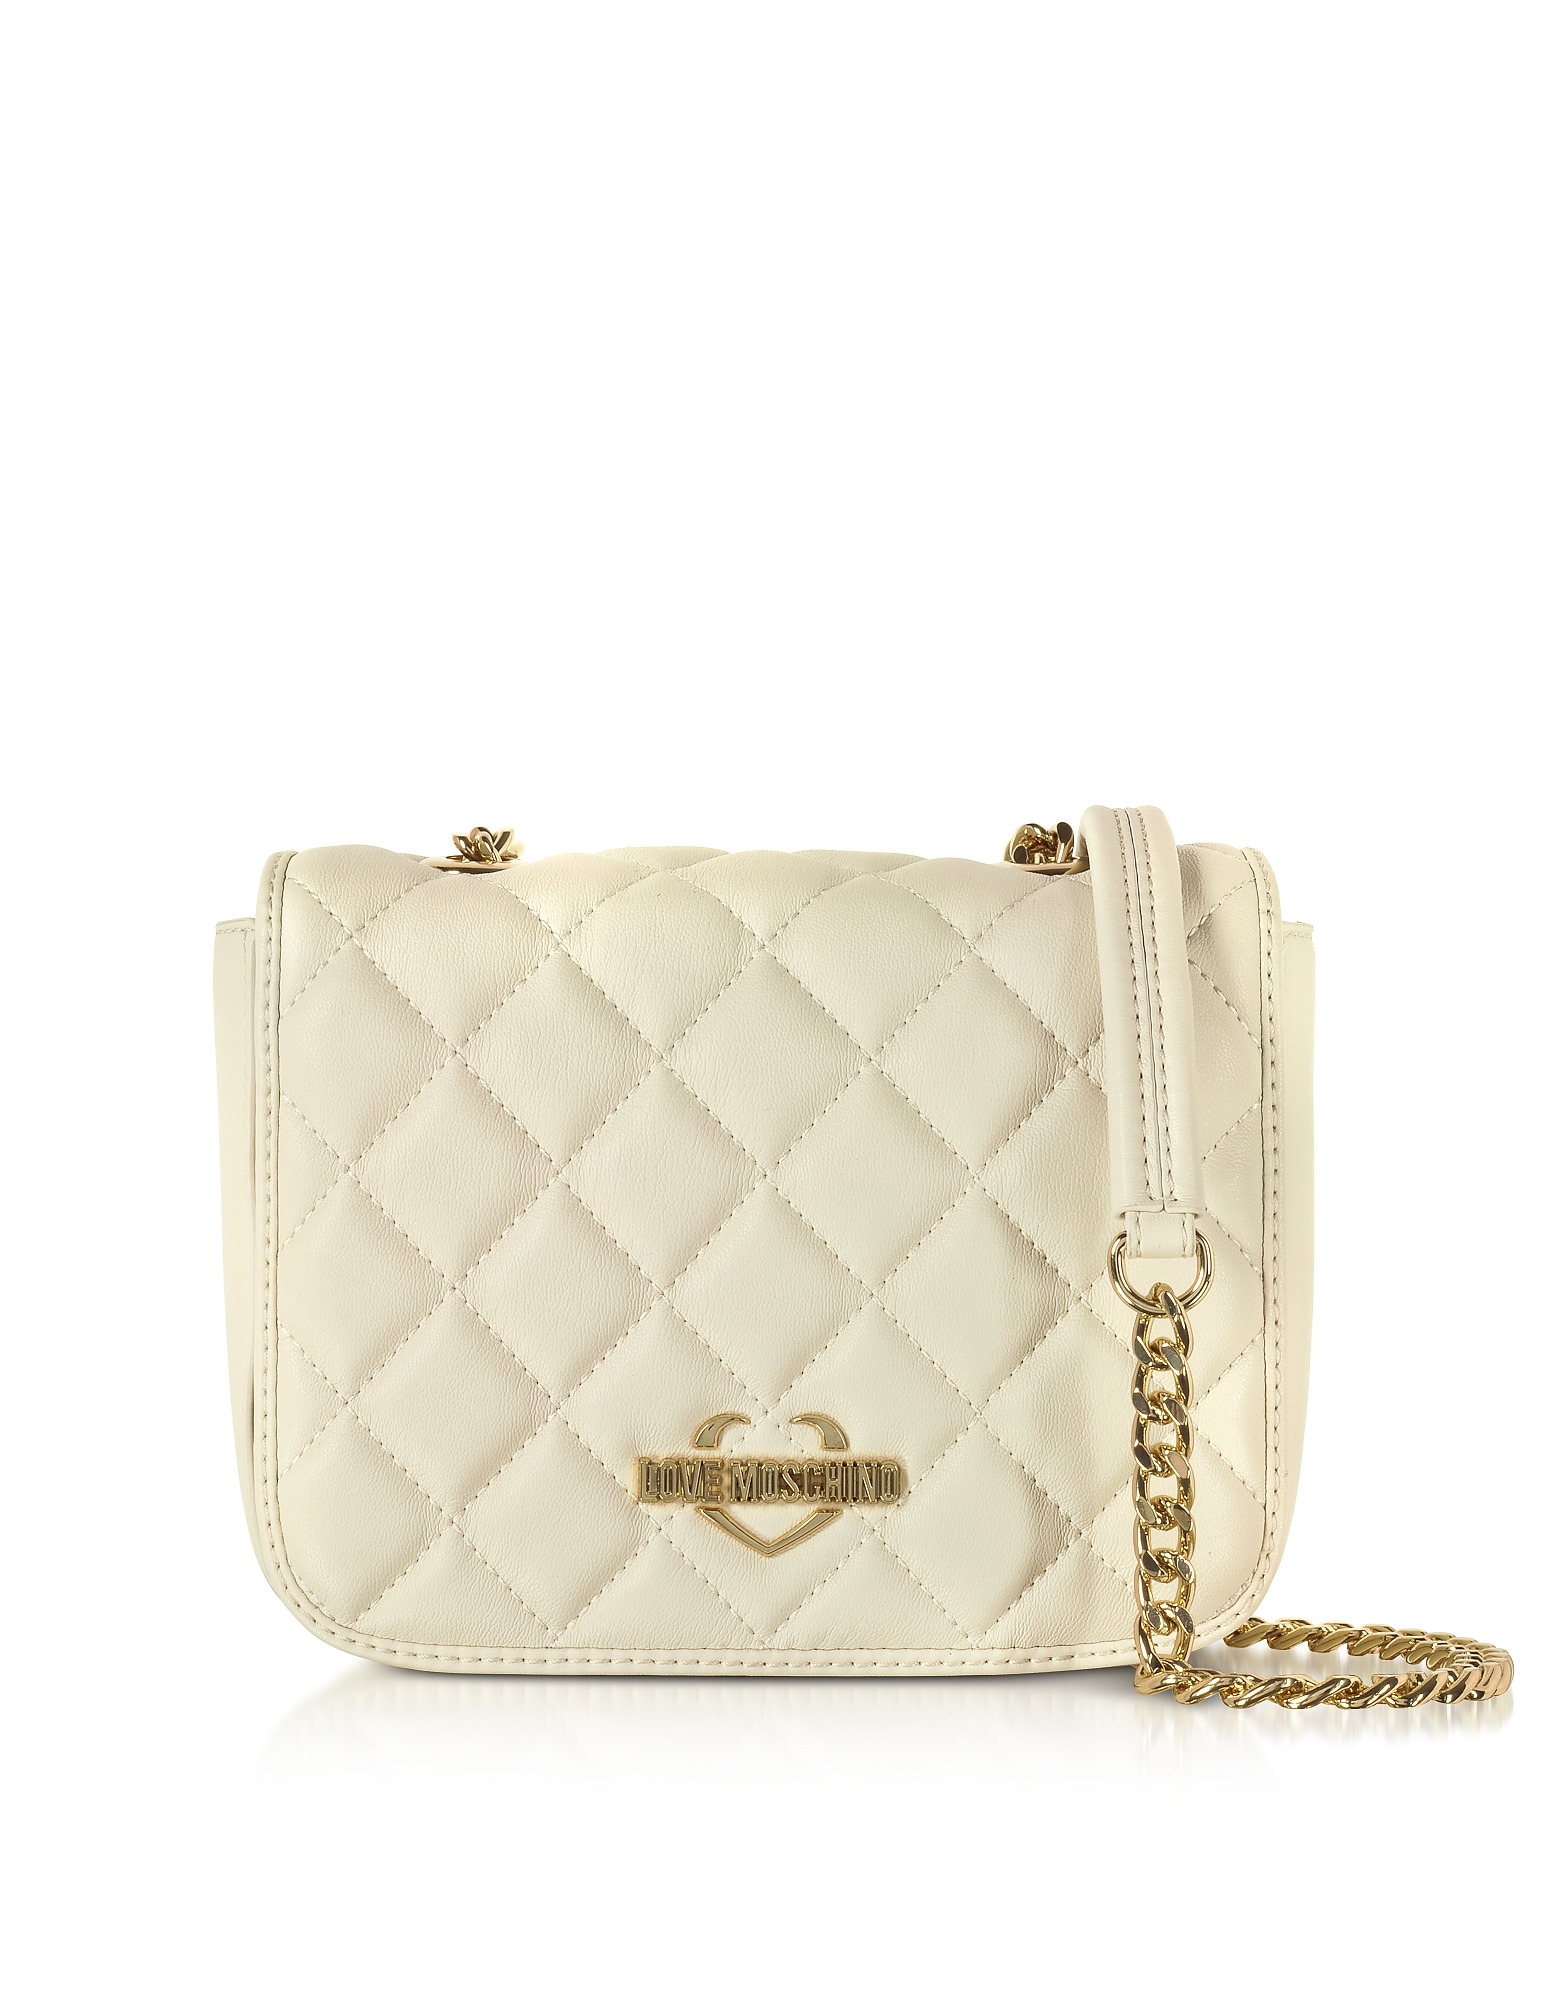 Love Moschino Handbags, Superquilted Eco-Leather Shoulder Bag